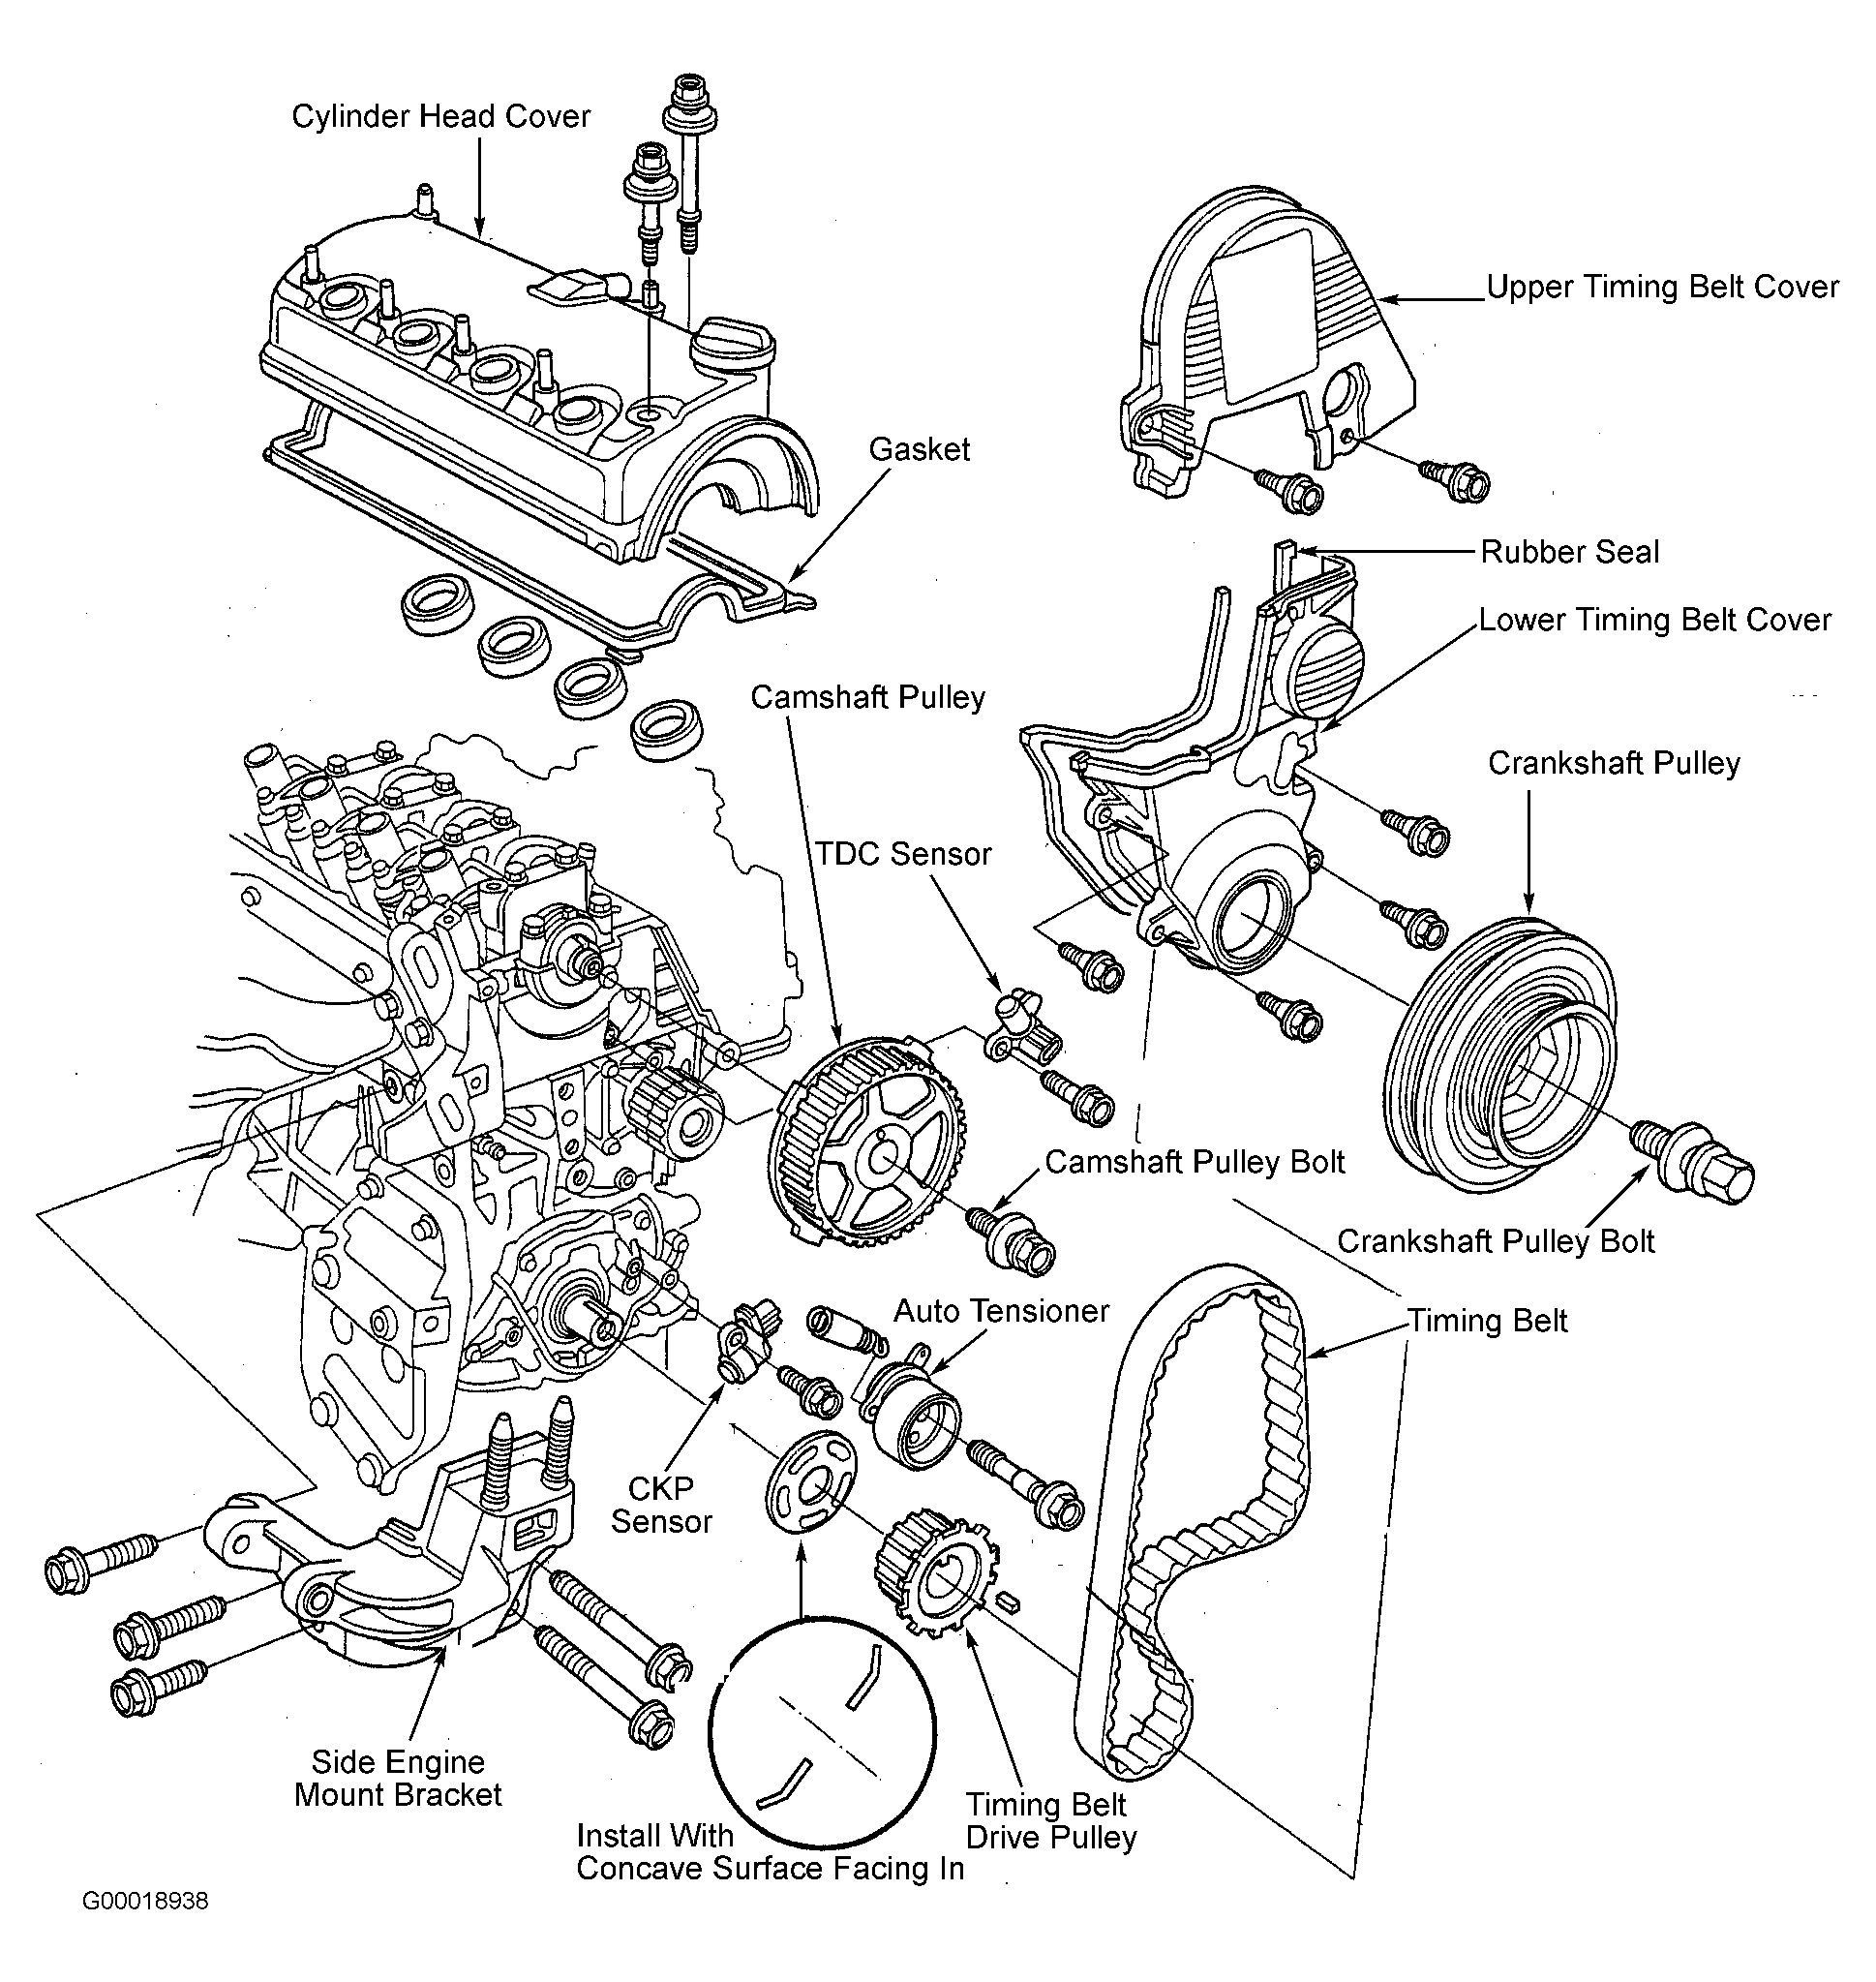 2012 Honda Cr V Engine Diagram. honda cr v bumper components oem parts.  rear lower honda cr v 2012 2013 2014 re1 engine torquerod. how to connect  airpods to android tv in2002-acura-tl-radio.info